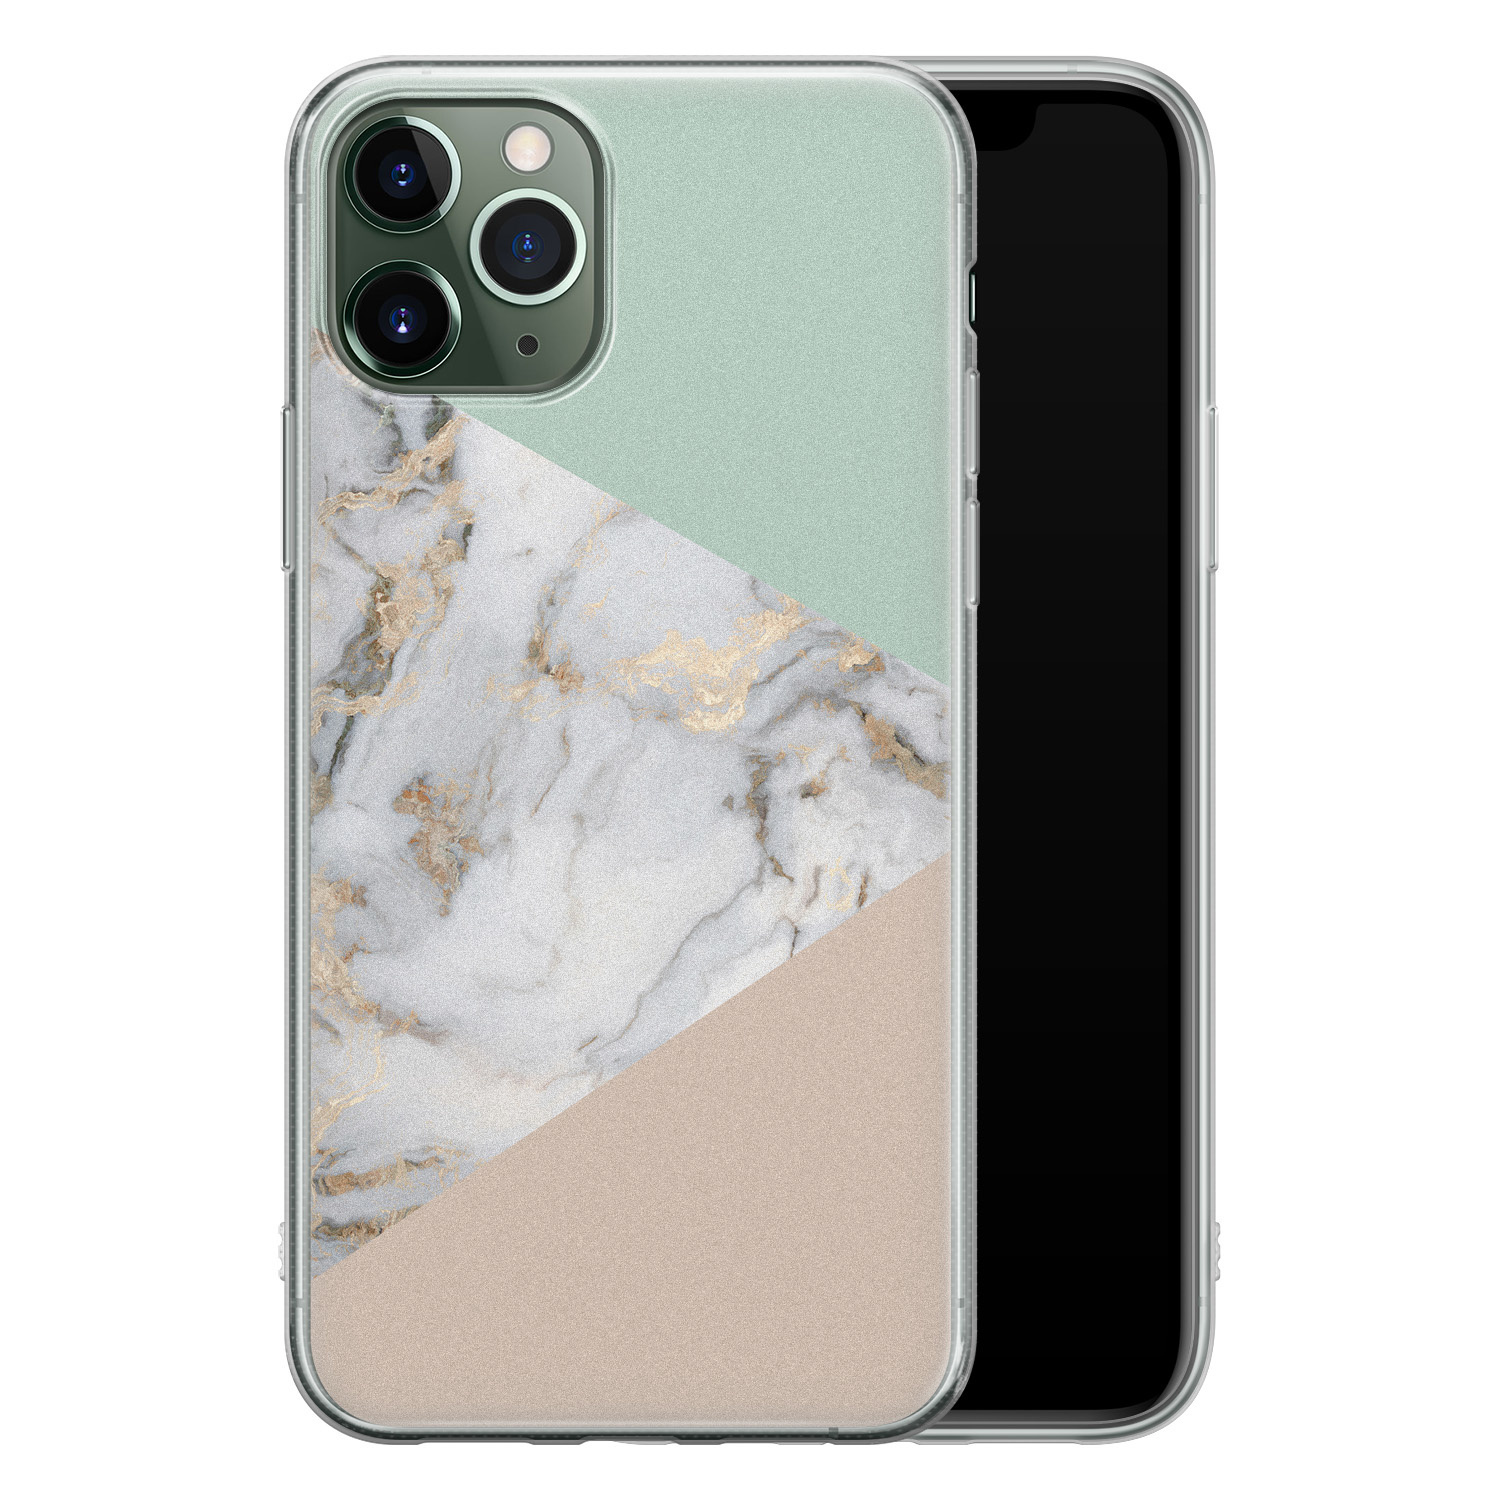 iPhone 11 Pro Max siliconen hoesje - Marmer pastel mix